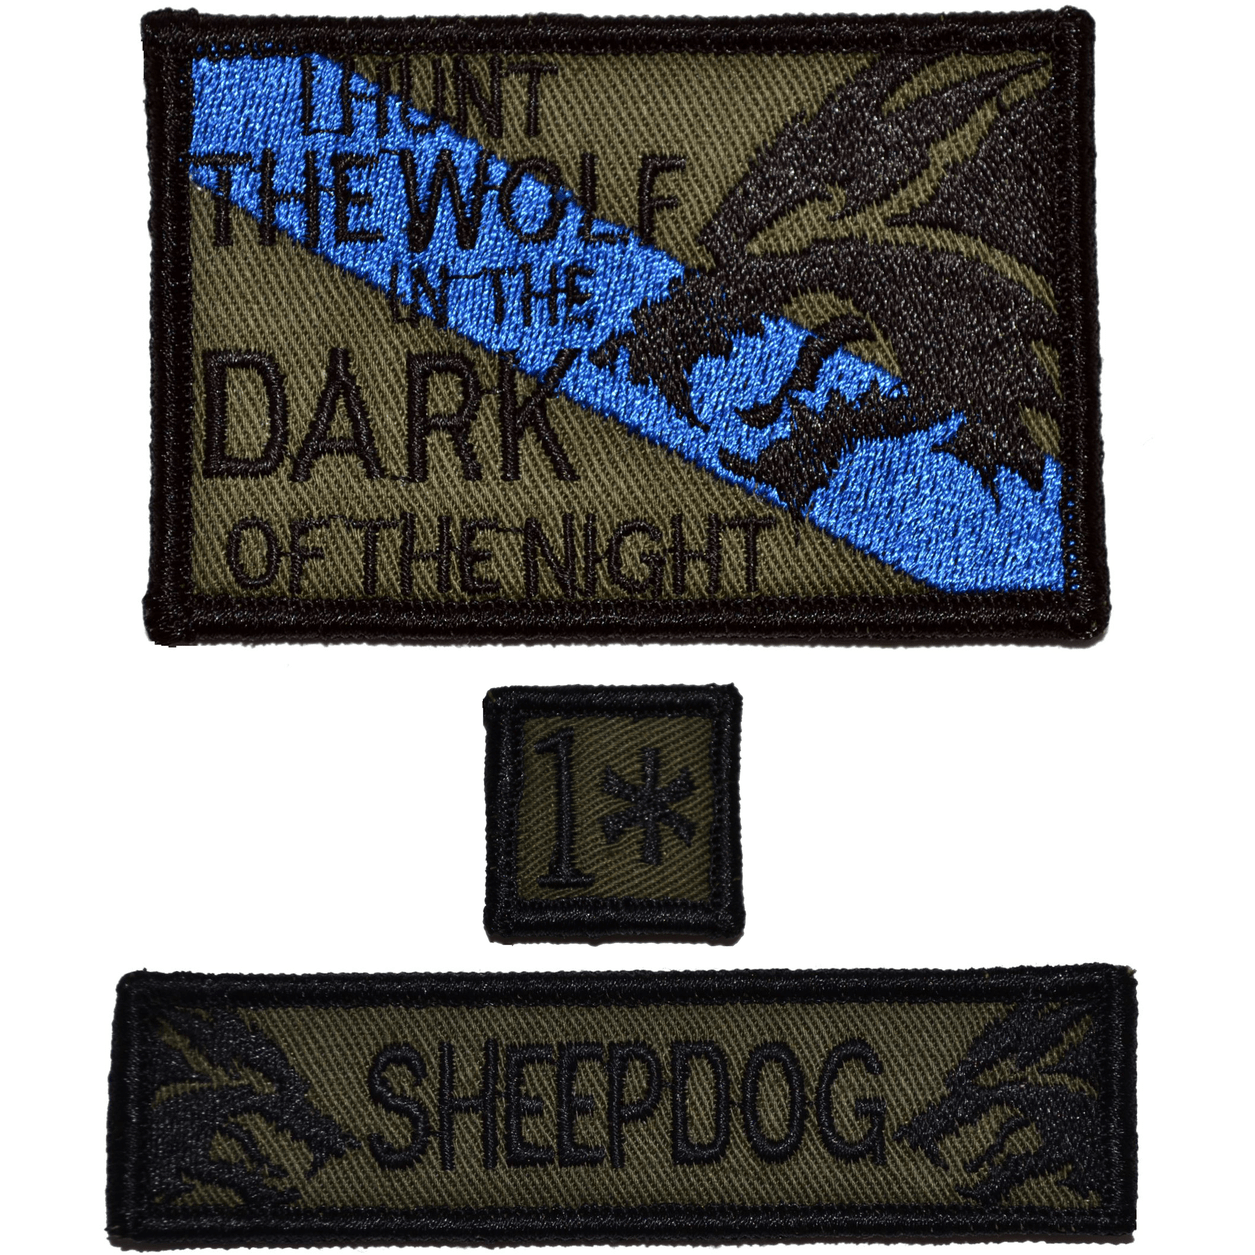 Patch Set:  Sheepdog Hunt The Wolf 2x3, Sheepdog 1x3.75, 1* One Ass to Risk 1x1